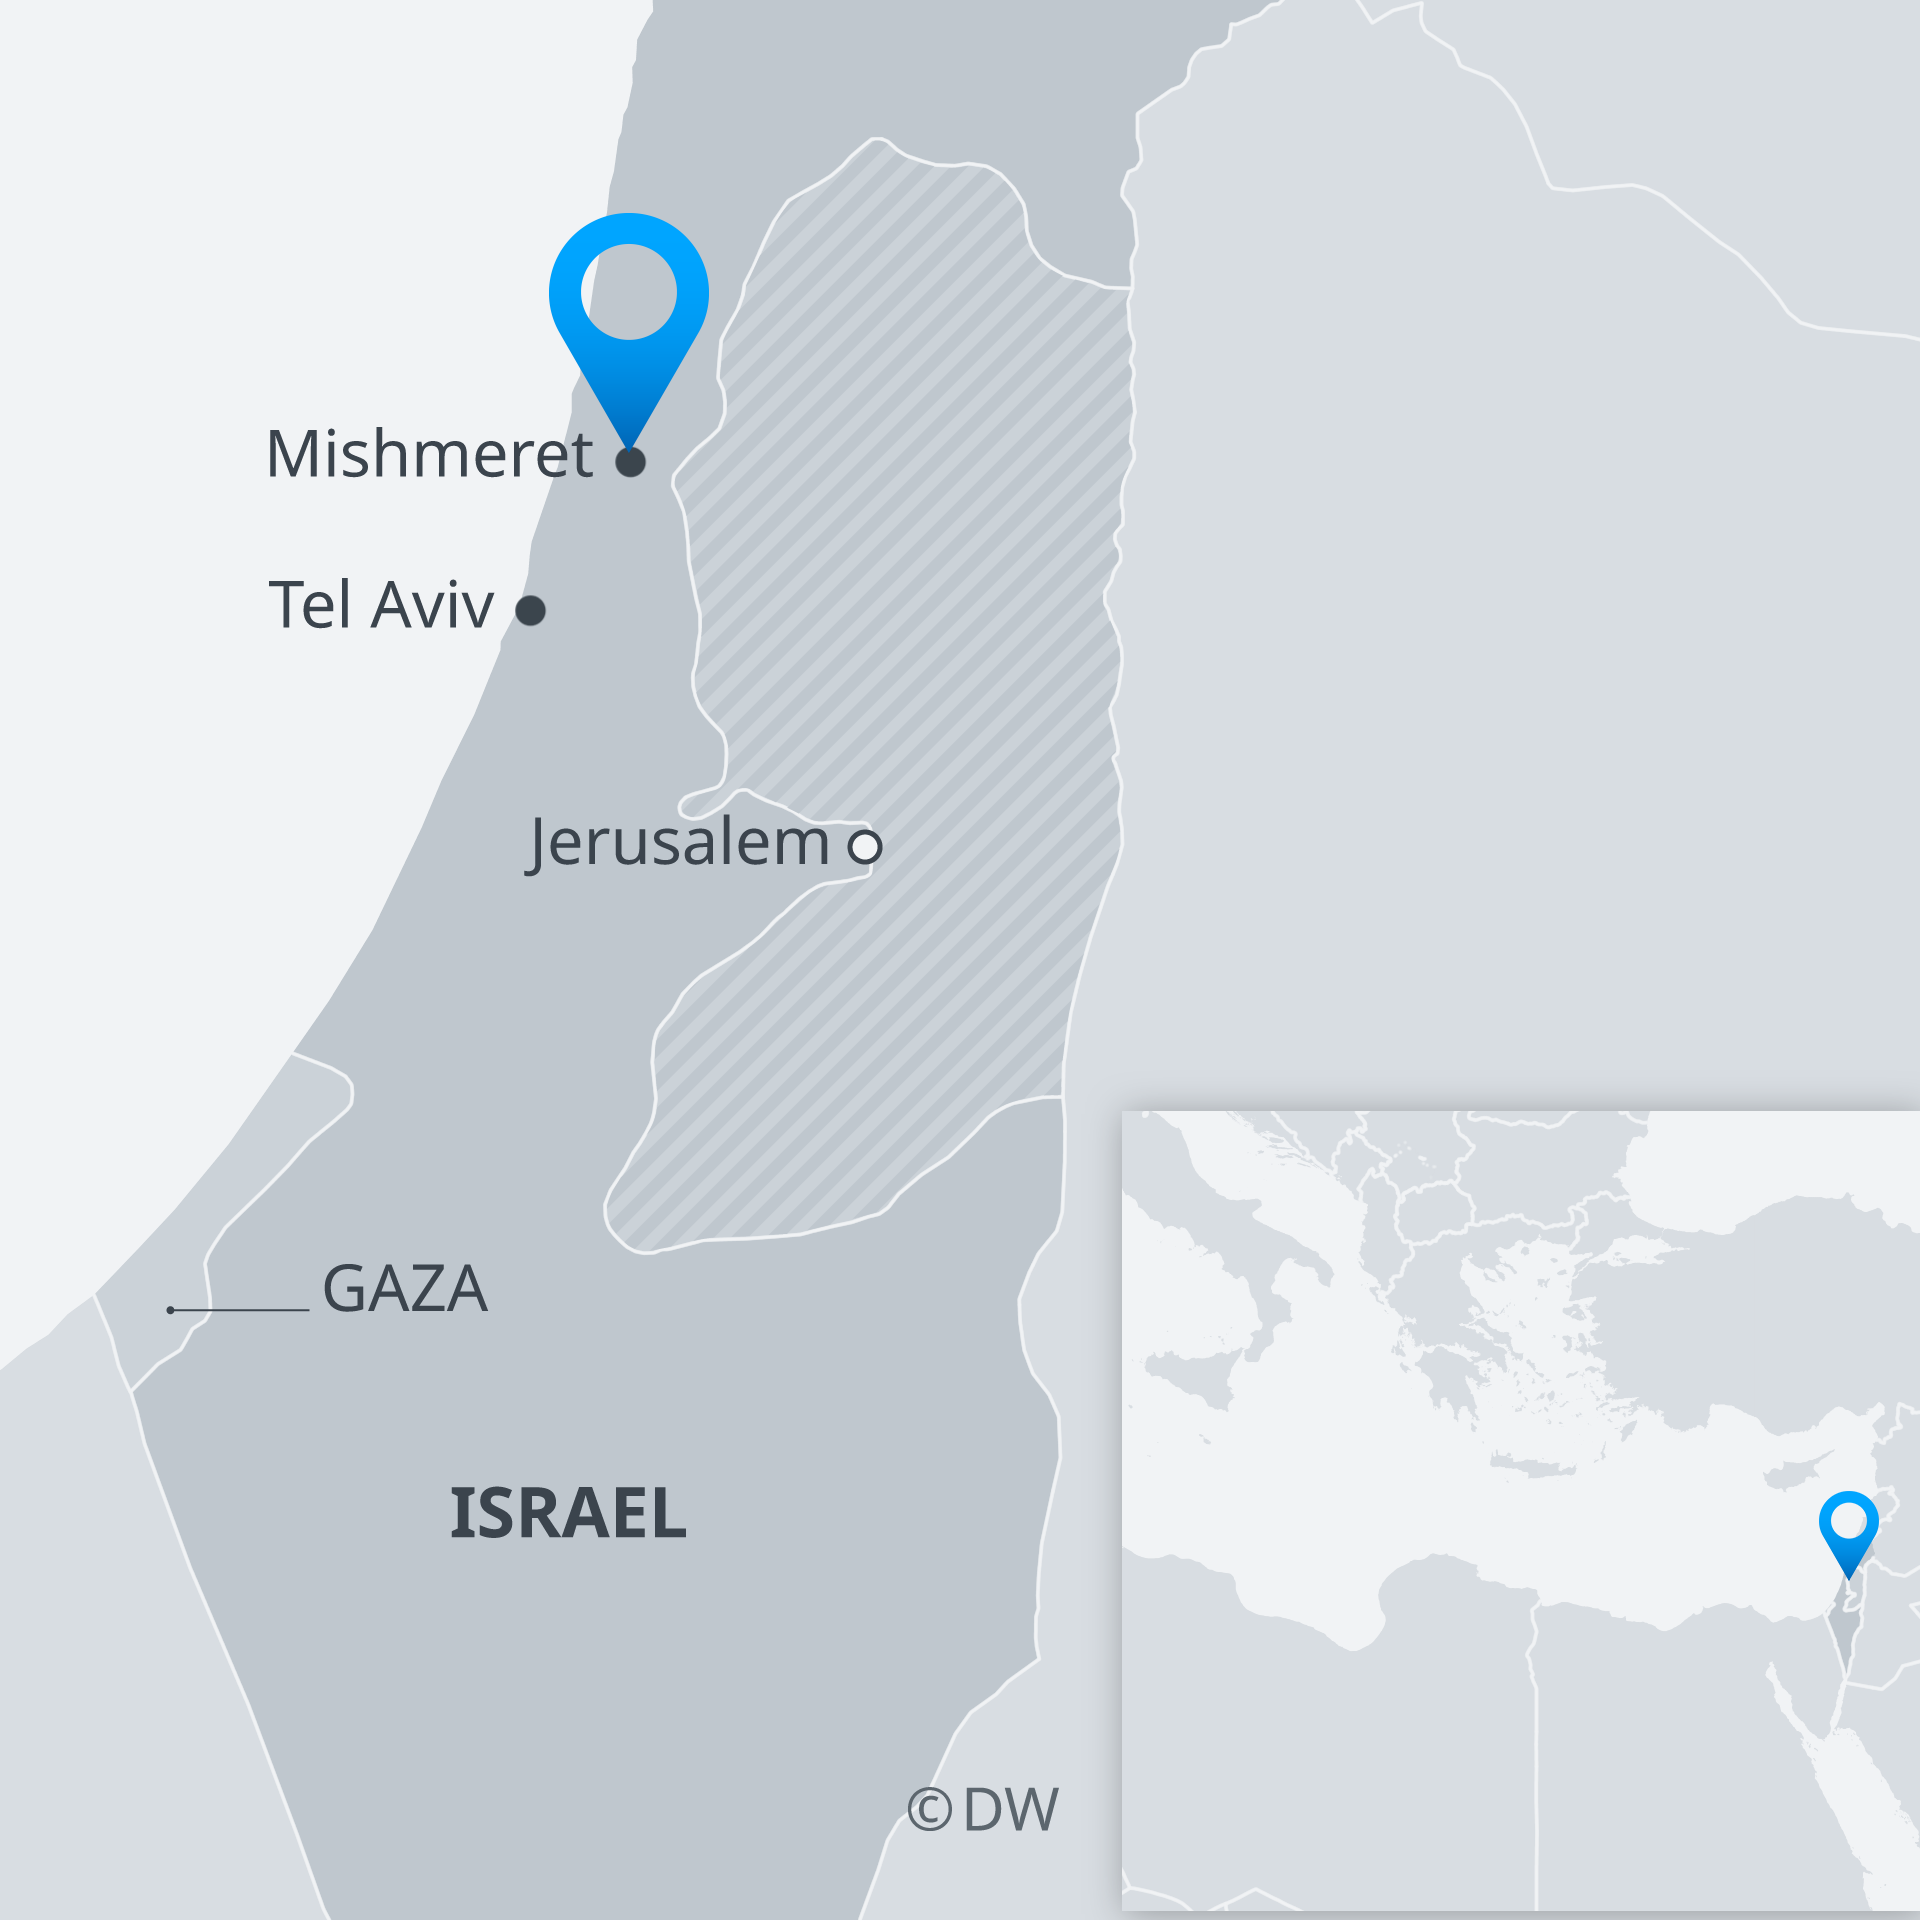 Map of Israel showing Mishmeret